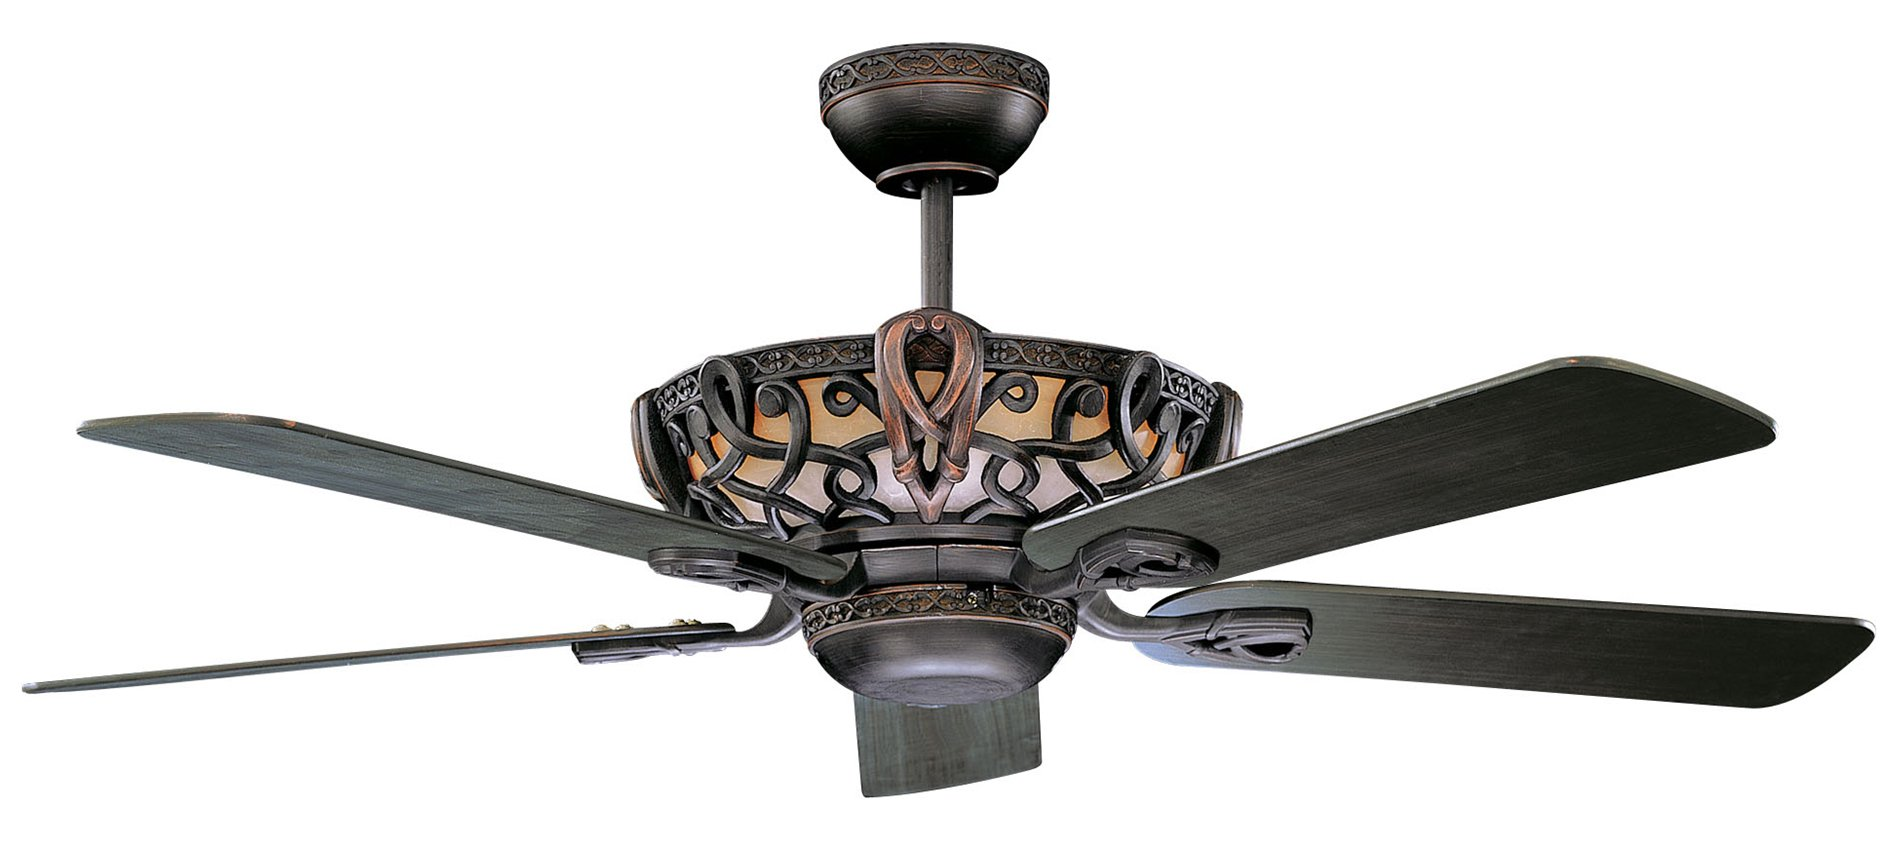 Concord fans 52ac5orb aracruz 52 traditional ceiling fan - Pictures of ceiling fans ...